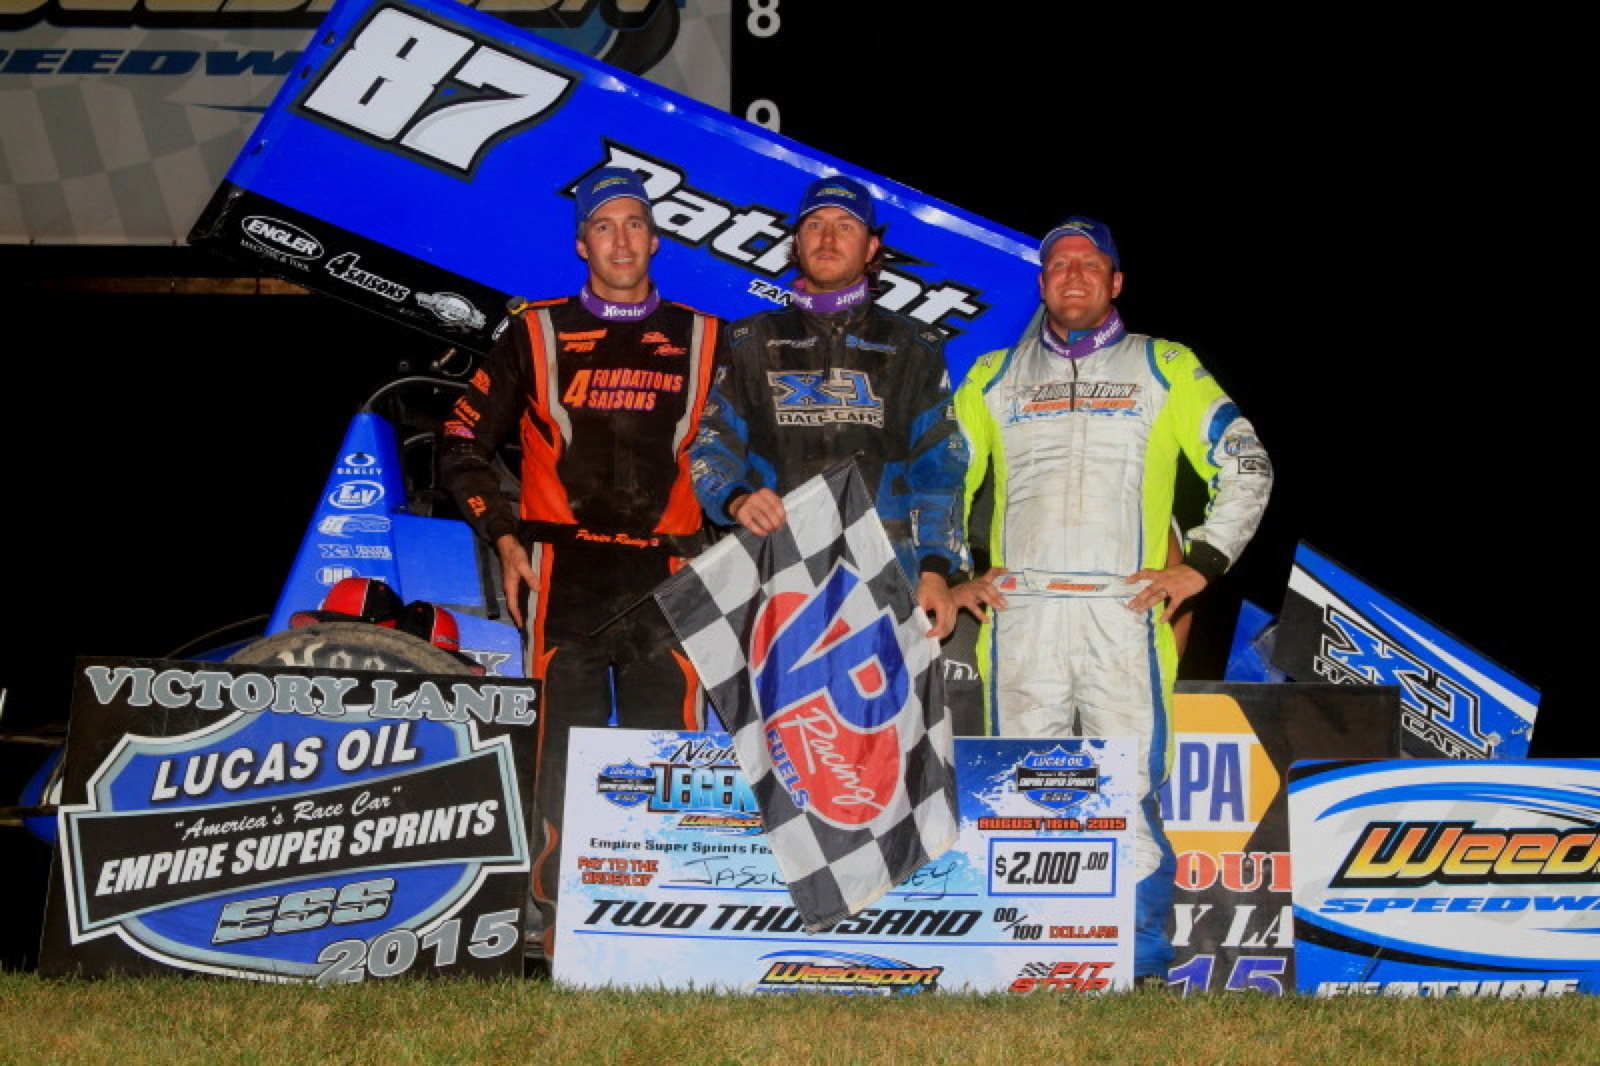 Racin Jason Outsmarts Outlasts ESS Competition